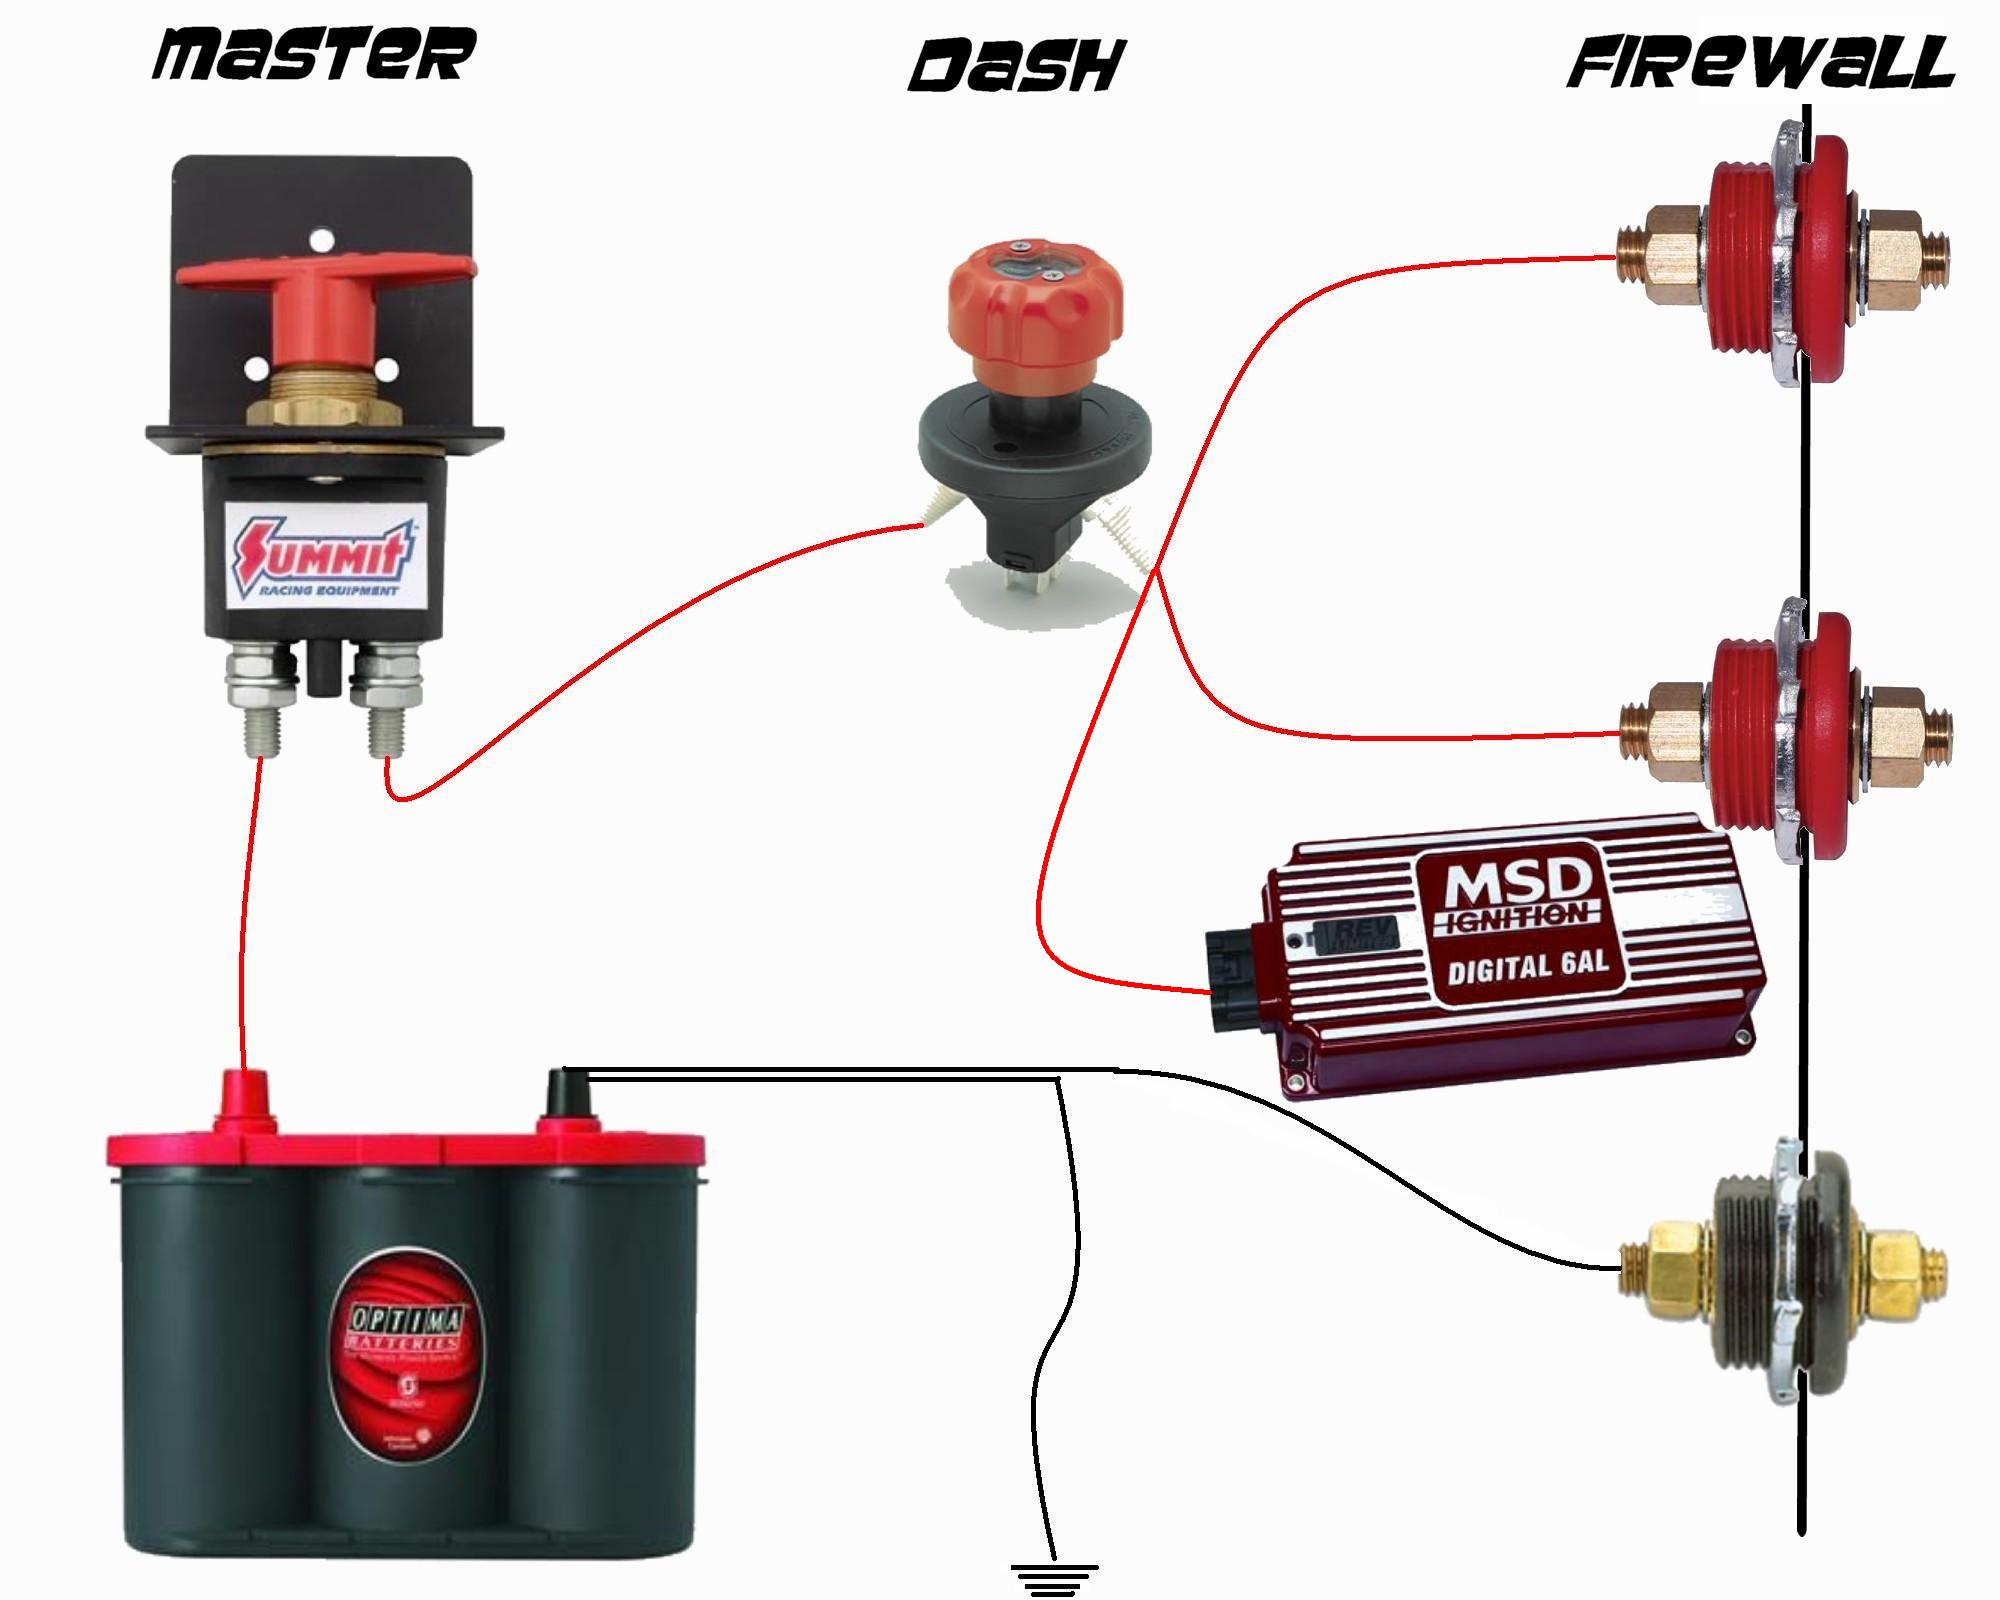 6 Way Switch Wiring Diagram Ford Library Msd Ignition Pole Relay Free Engine Image For User